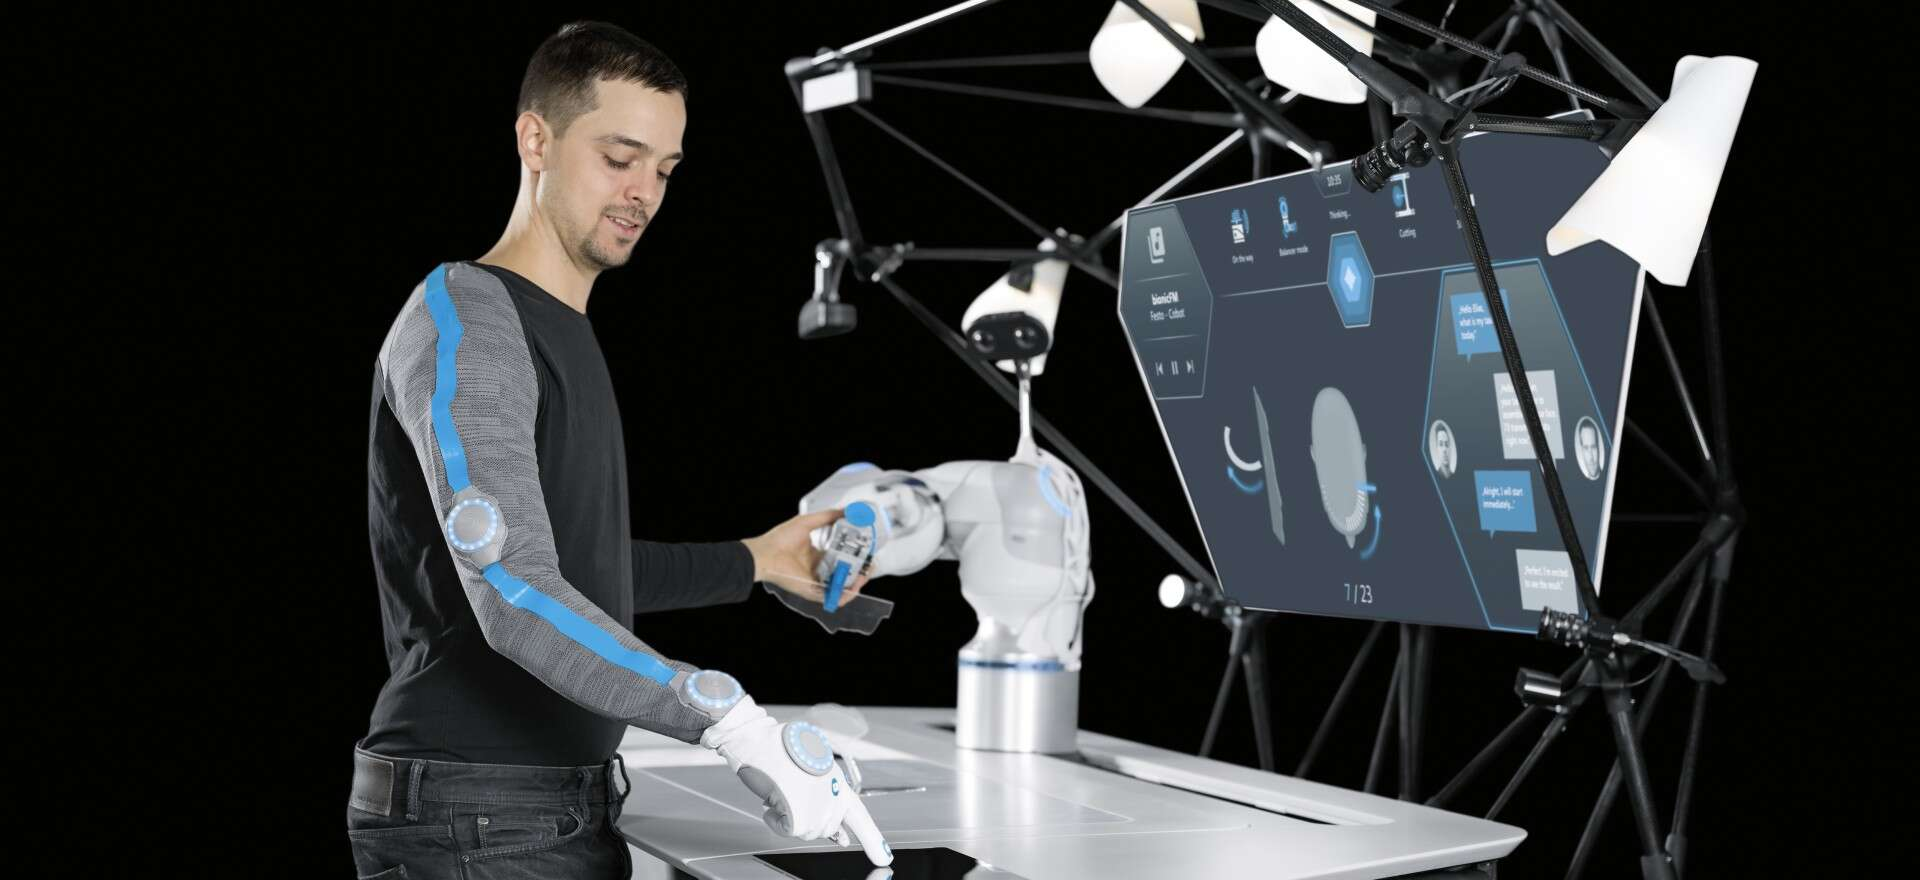 BionicWorkplace: human-robot collaboration with artificial intelligence